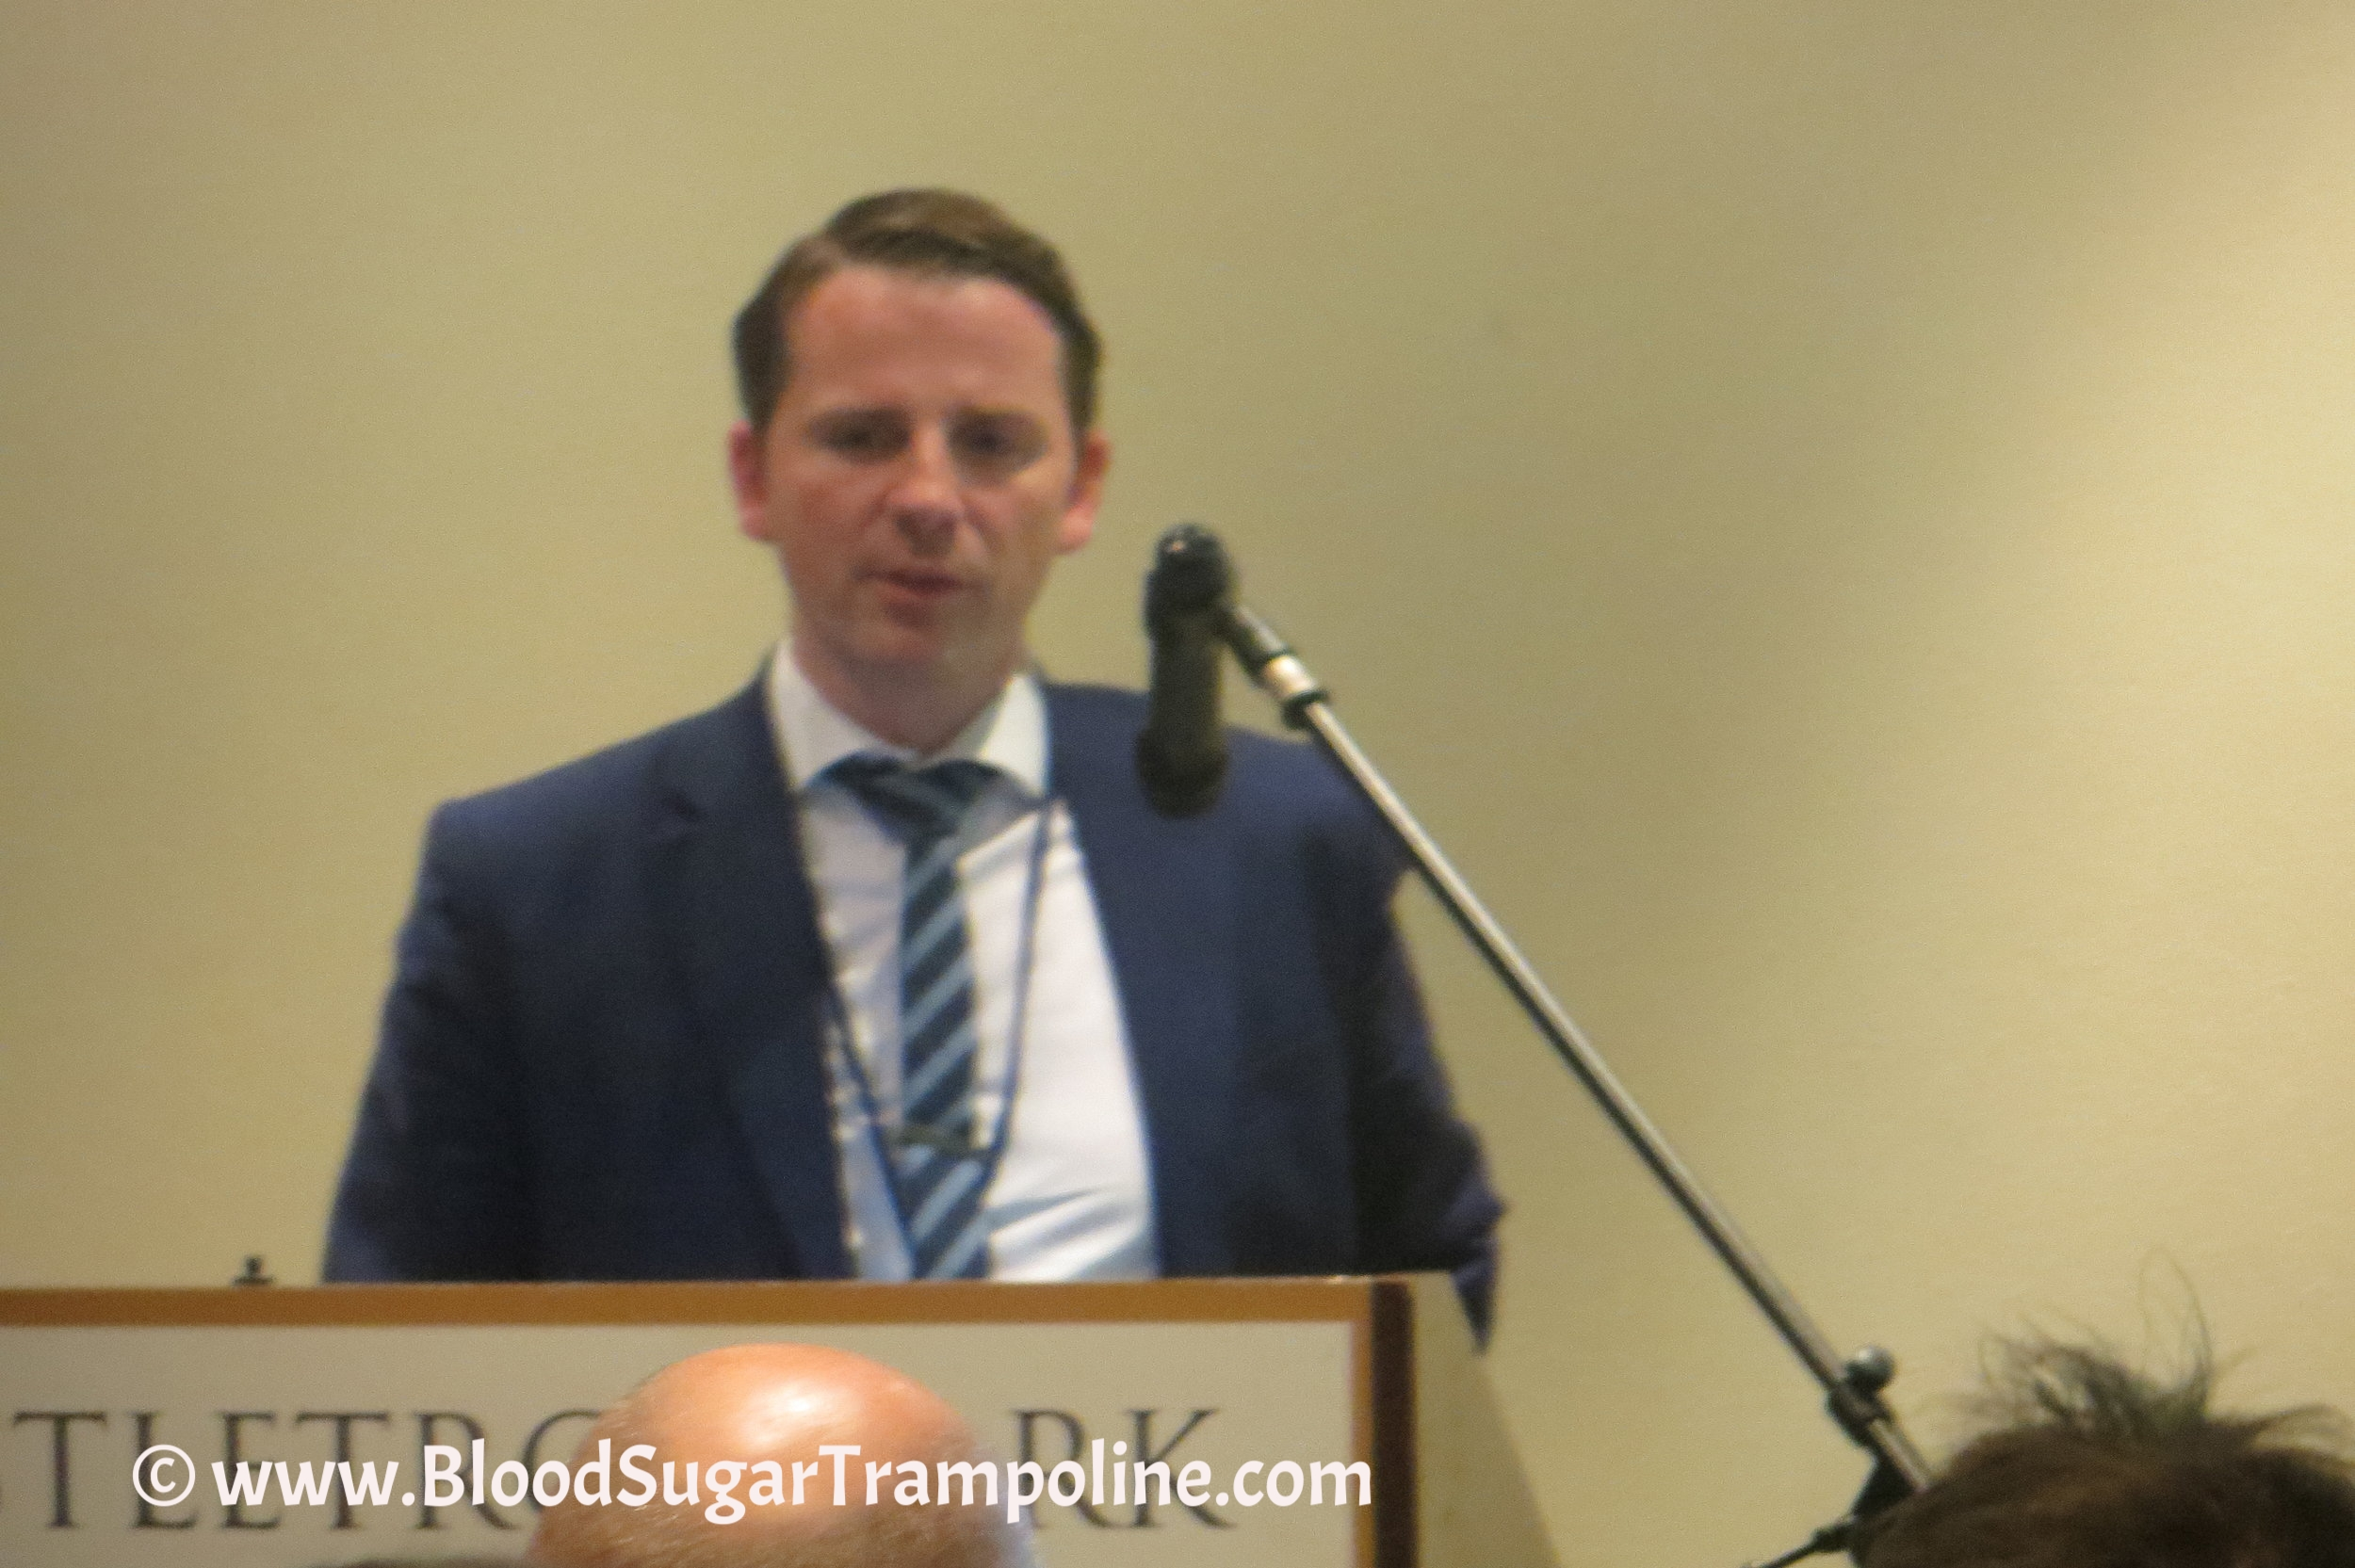 Dr Eoin Noctor, Consultant Endocrinologist, UL Hospital Group